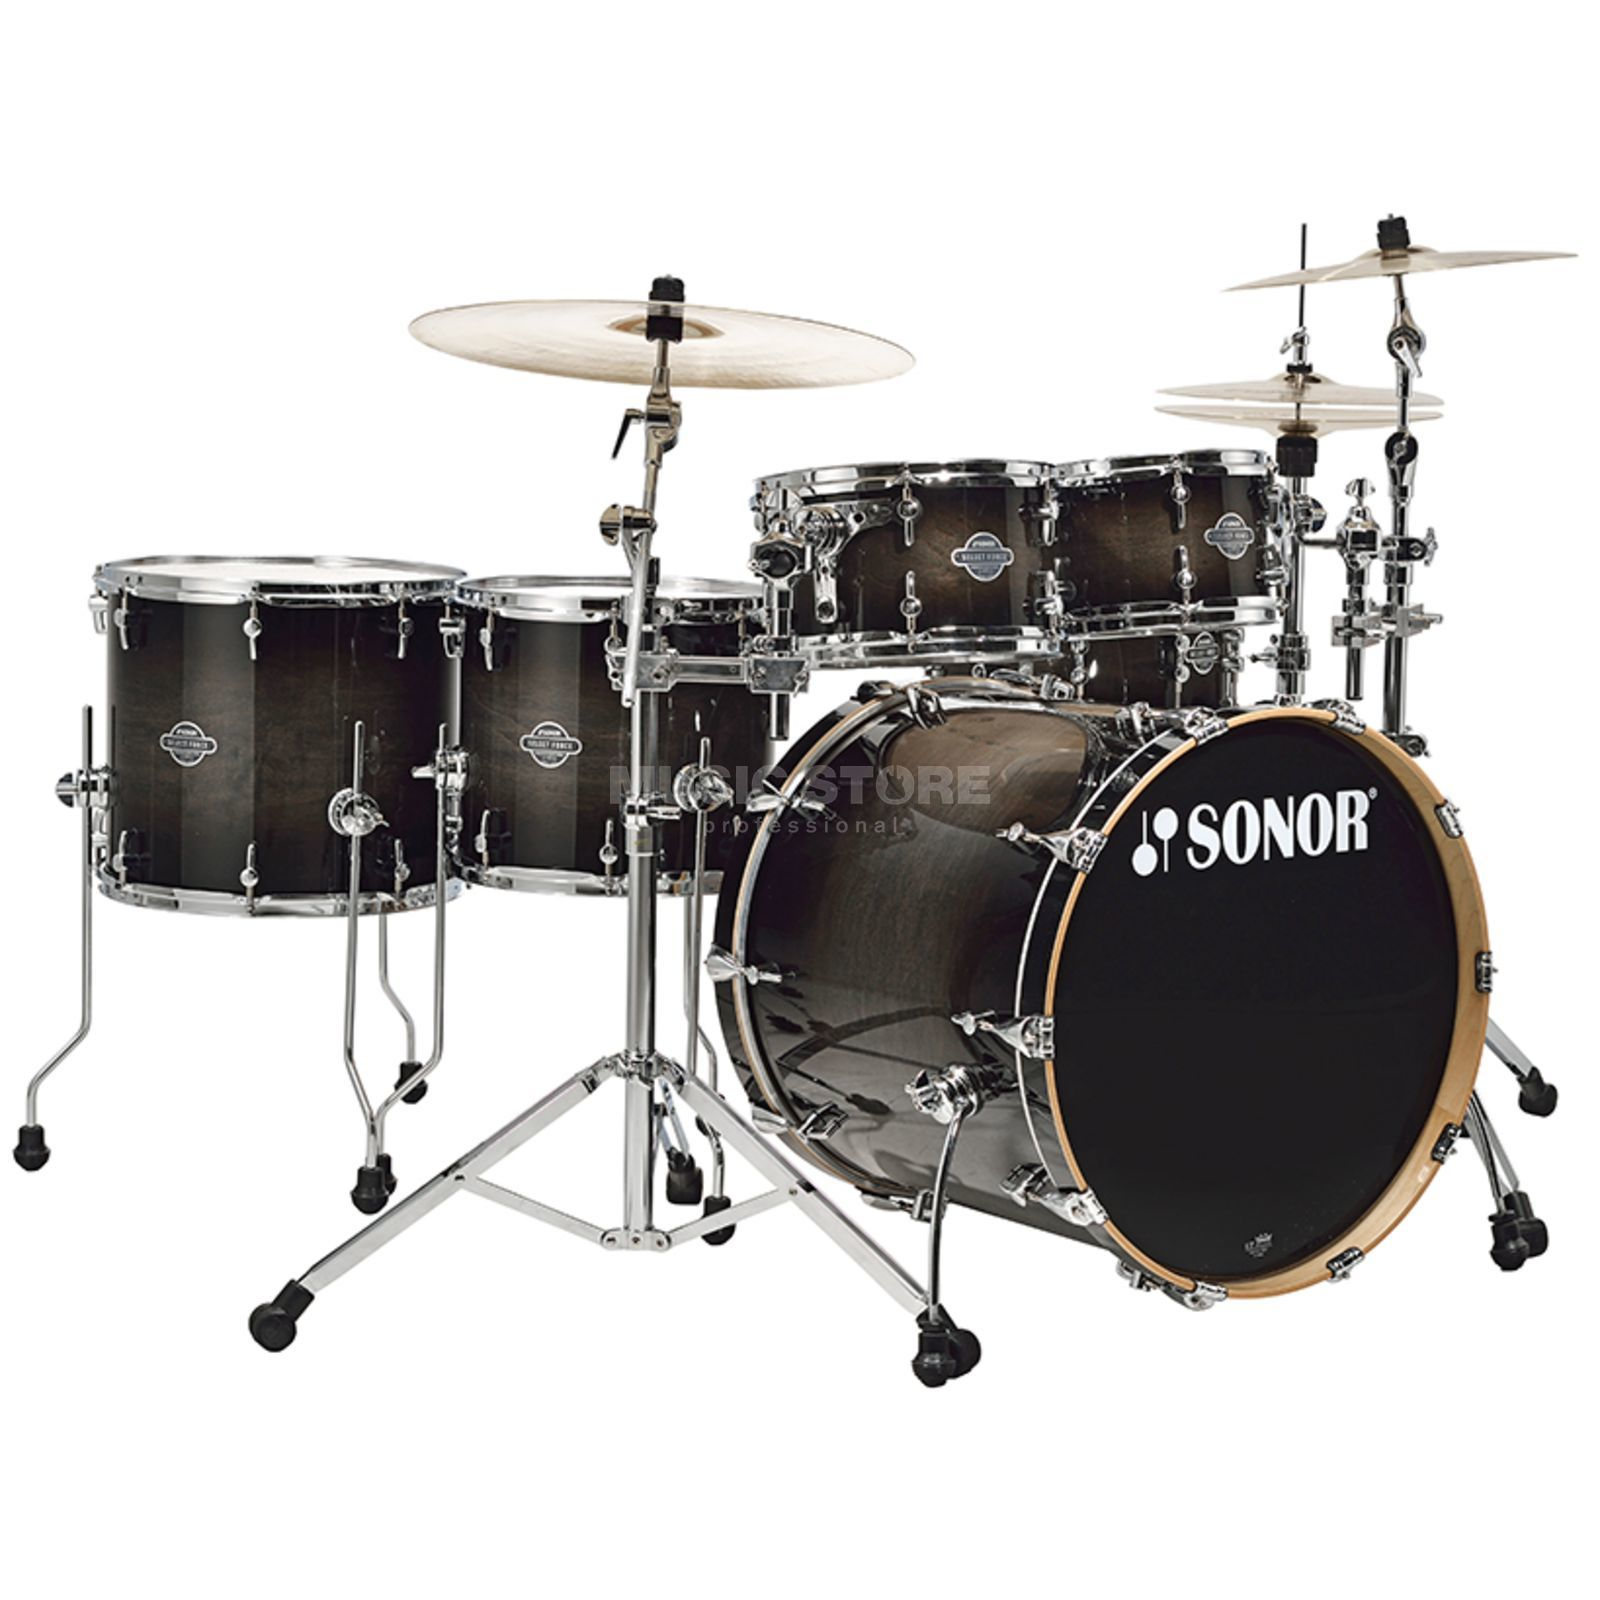 Sonor Select Force Stage 3, Transparent Black Burst #64 Produktbild